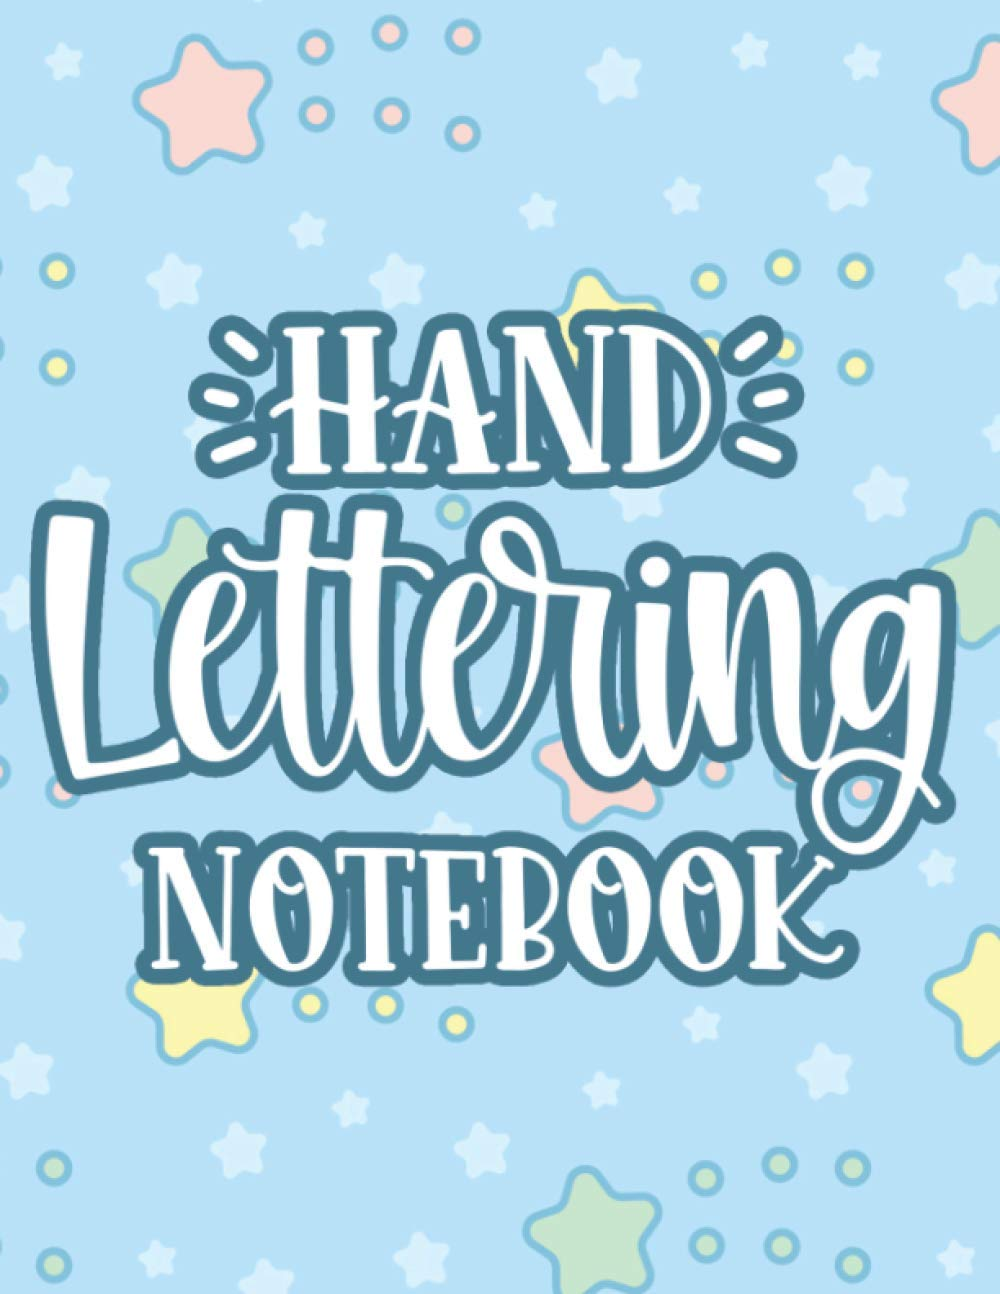 Hand Lettering Notebook: Easy Creative Handwriting Practice Papers, Notebook For Lettering And Modern Calligraphy